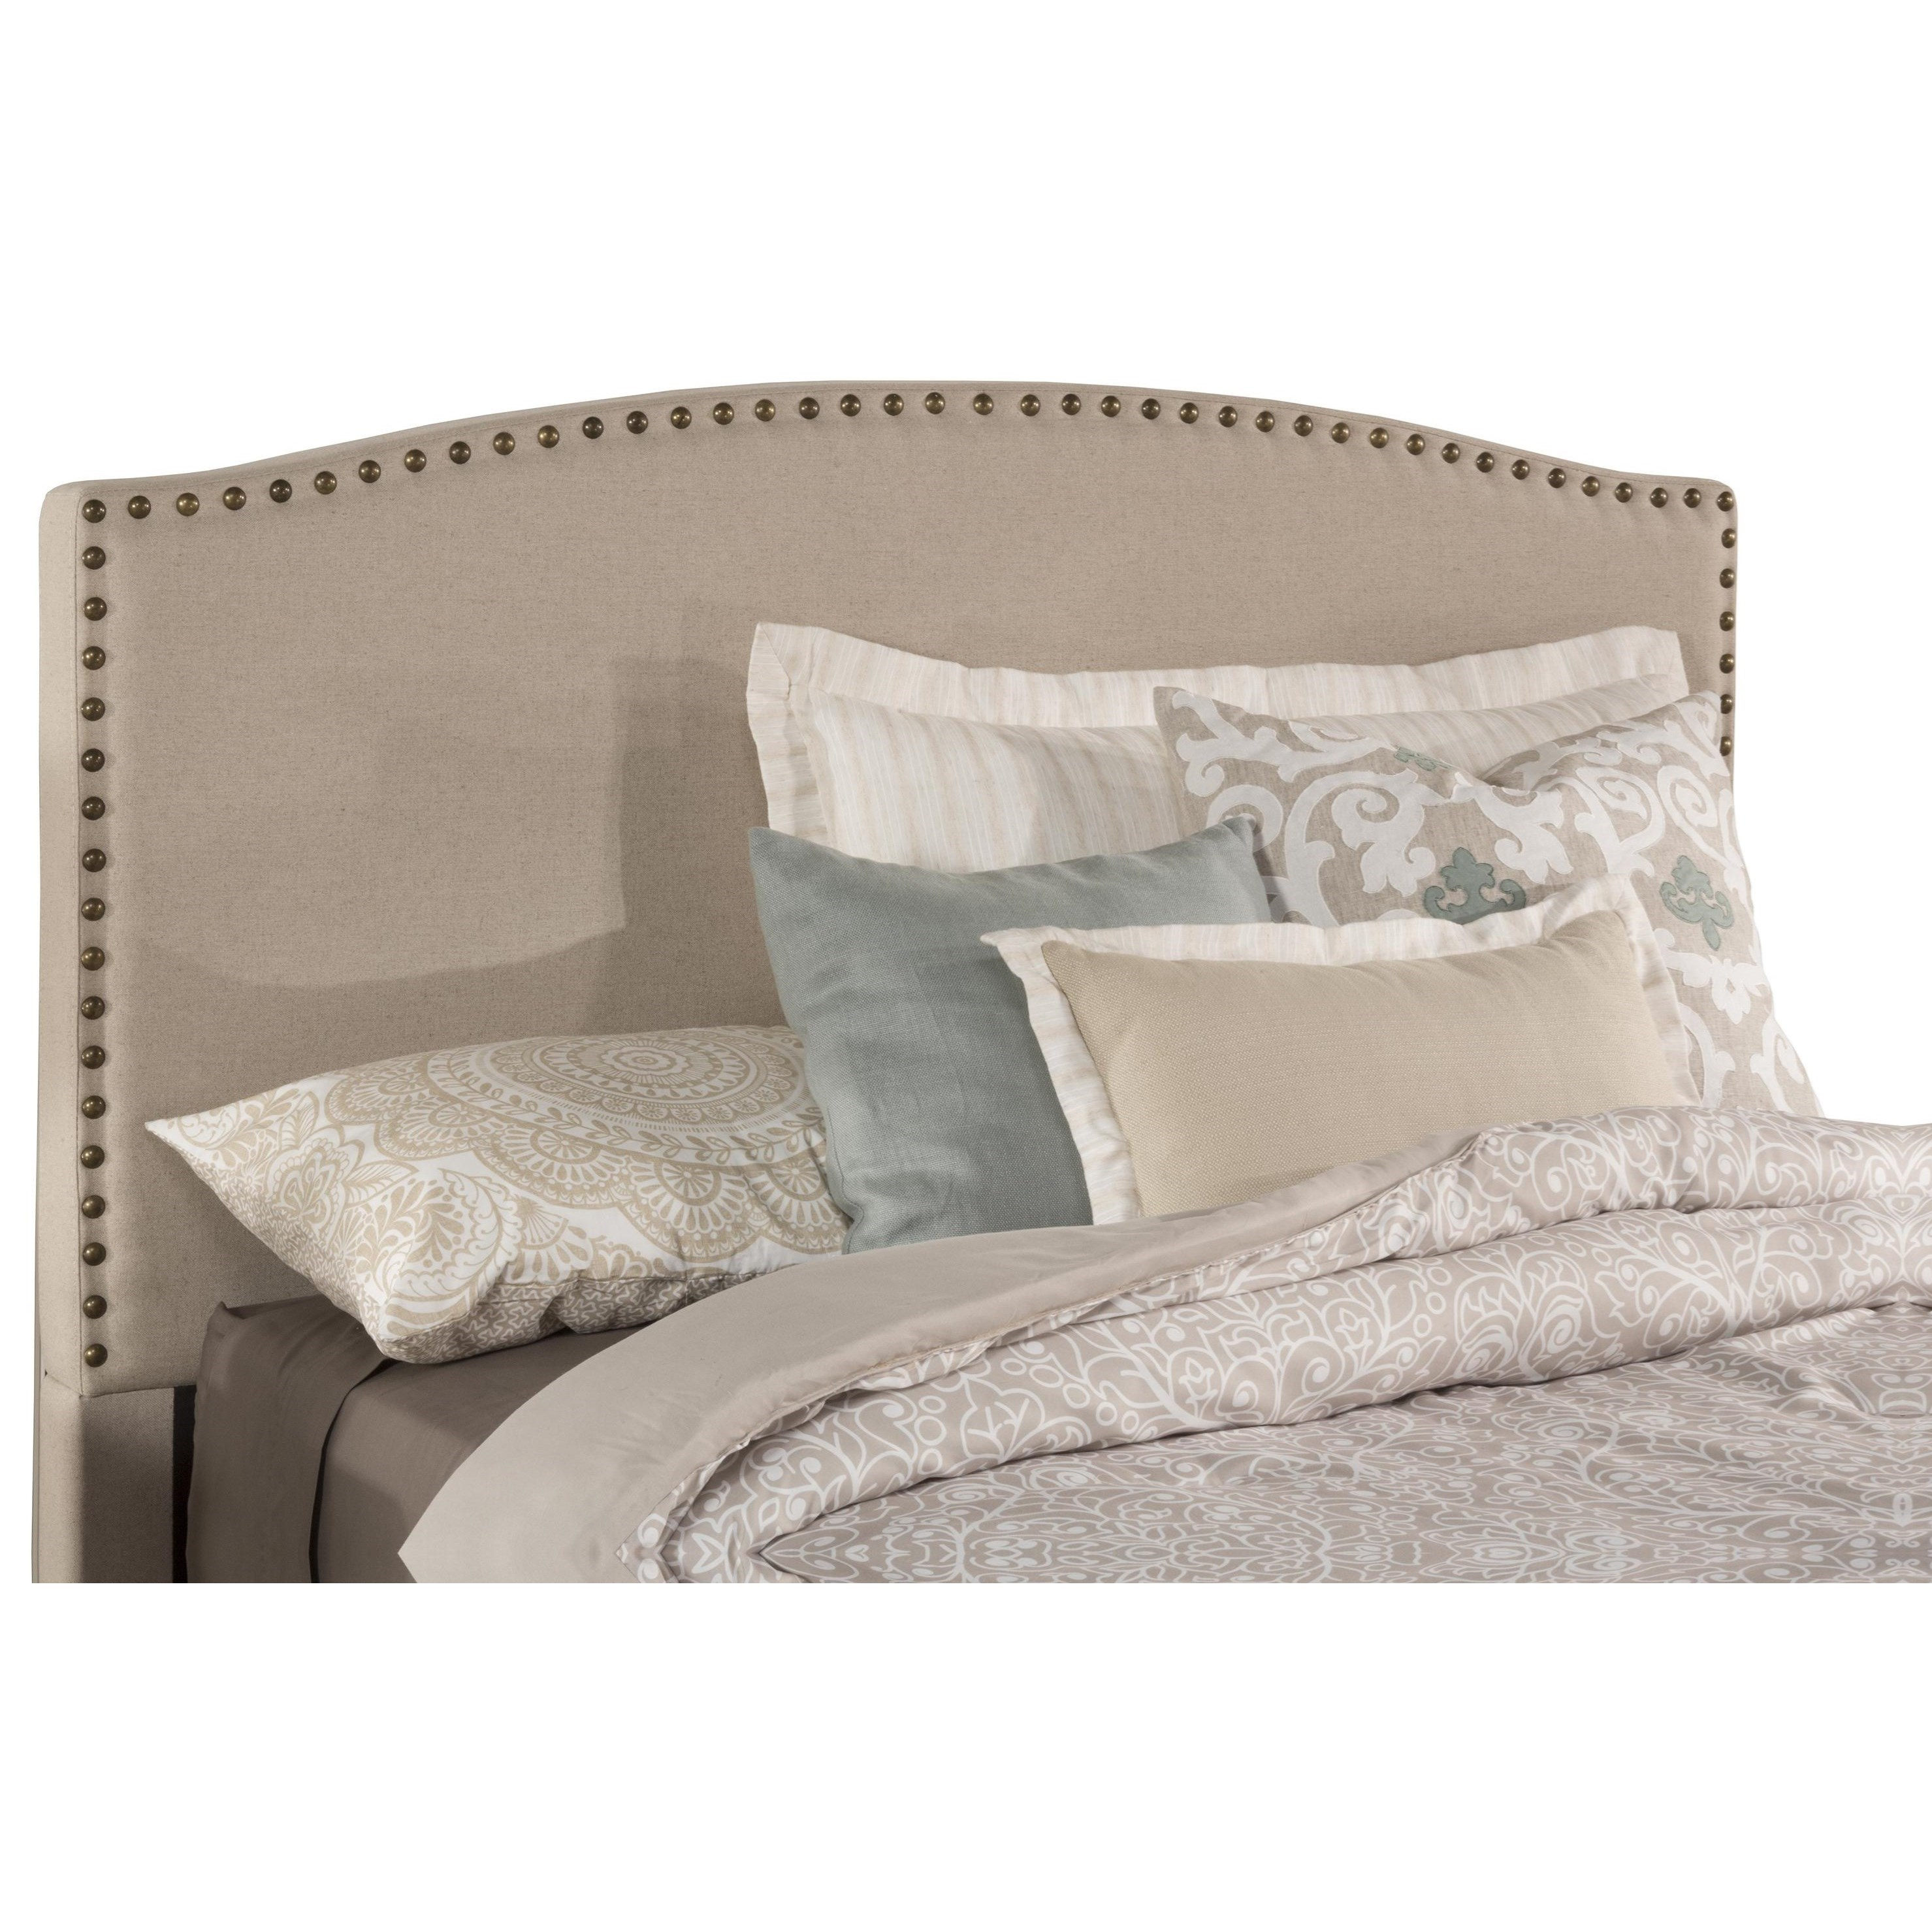 Kerstein Queen Headboard by Hillsdale at Gill Brothers Furniture